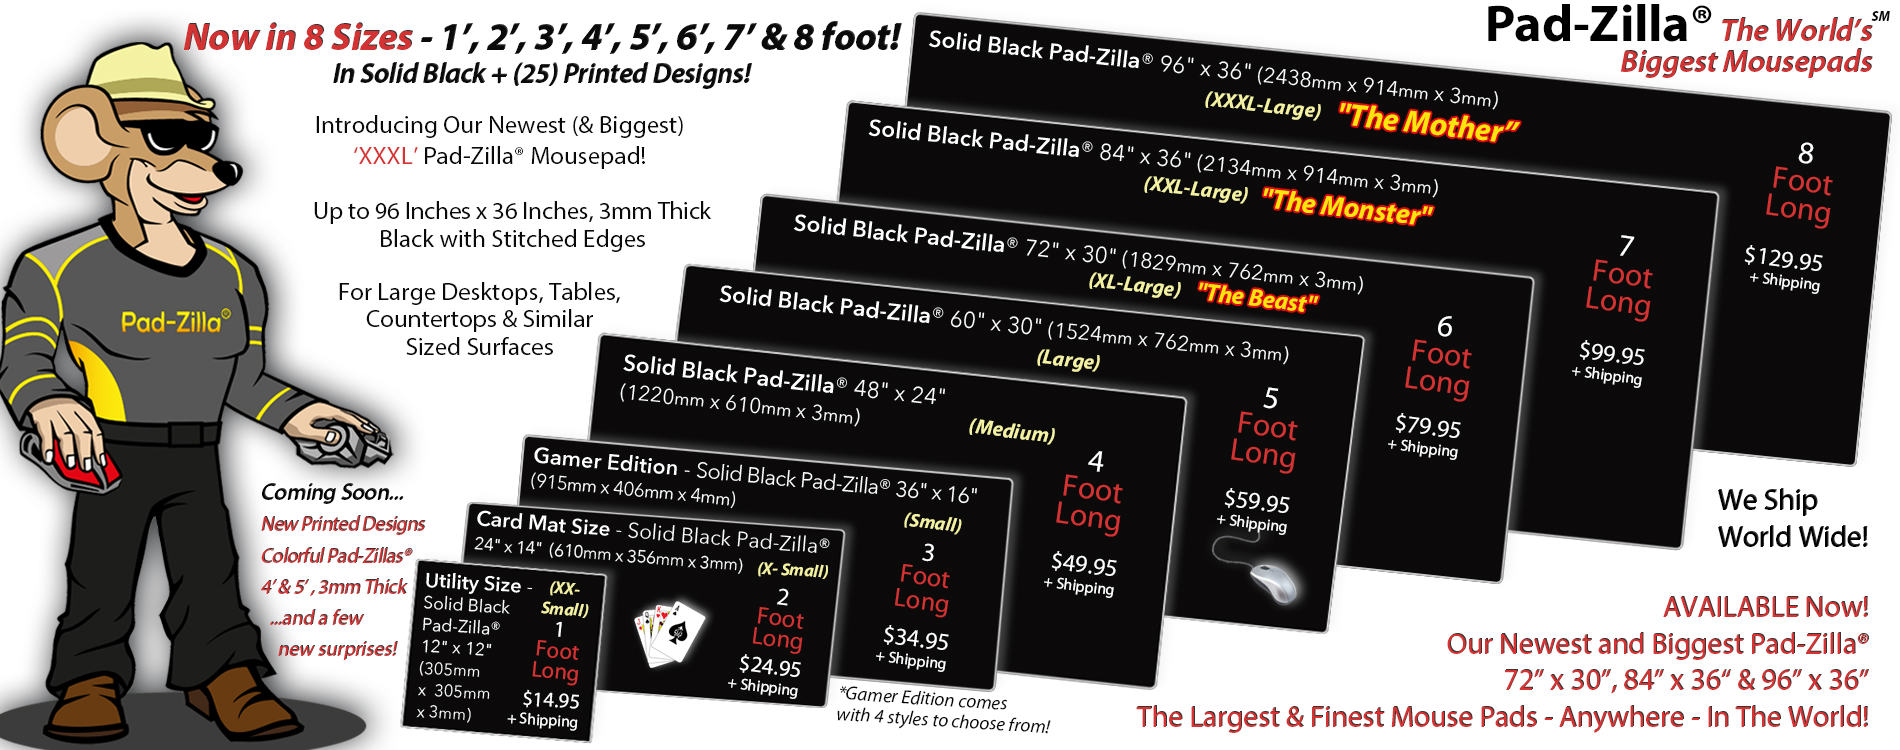 New 8 Foot, 7 Foot, & 6 Foot Pad-Zilla® Giant Mouse Pads & Desk Mats - Order Now!